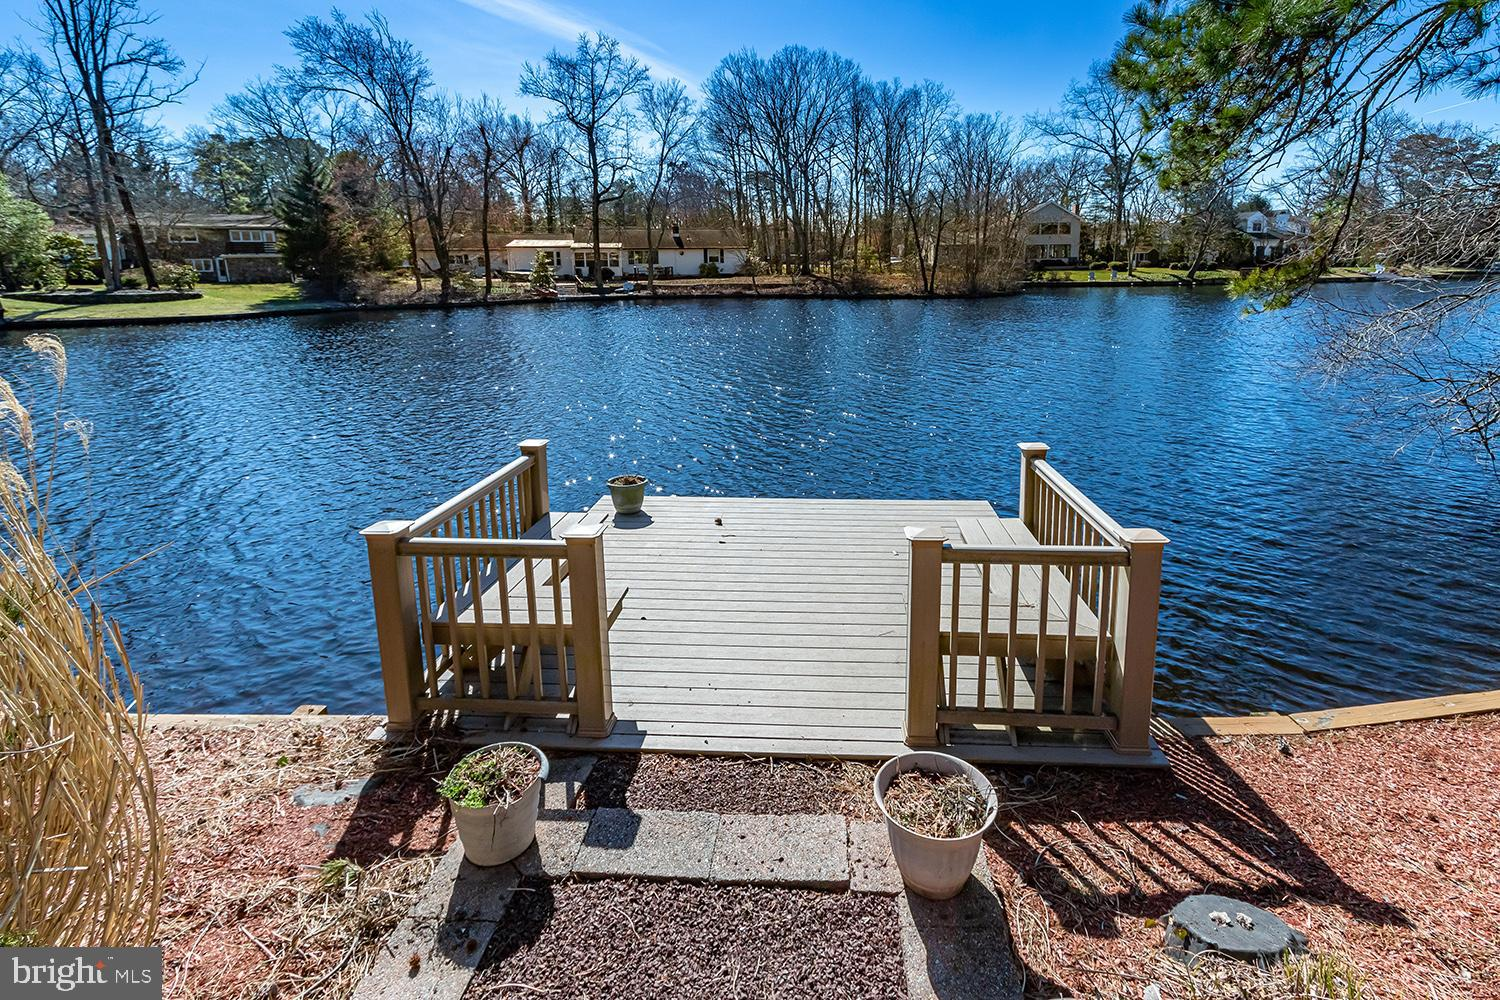 Dock view of the lake